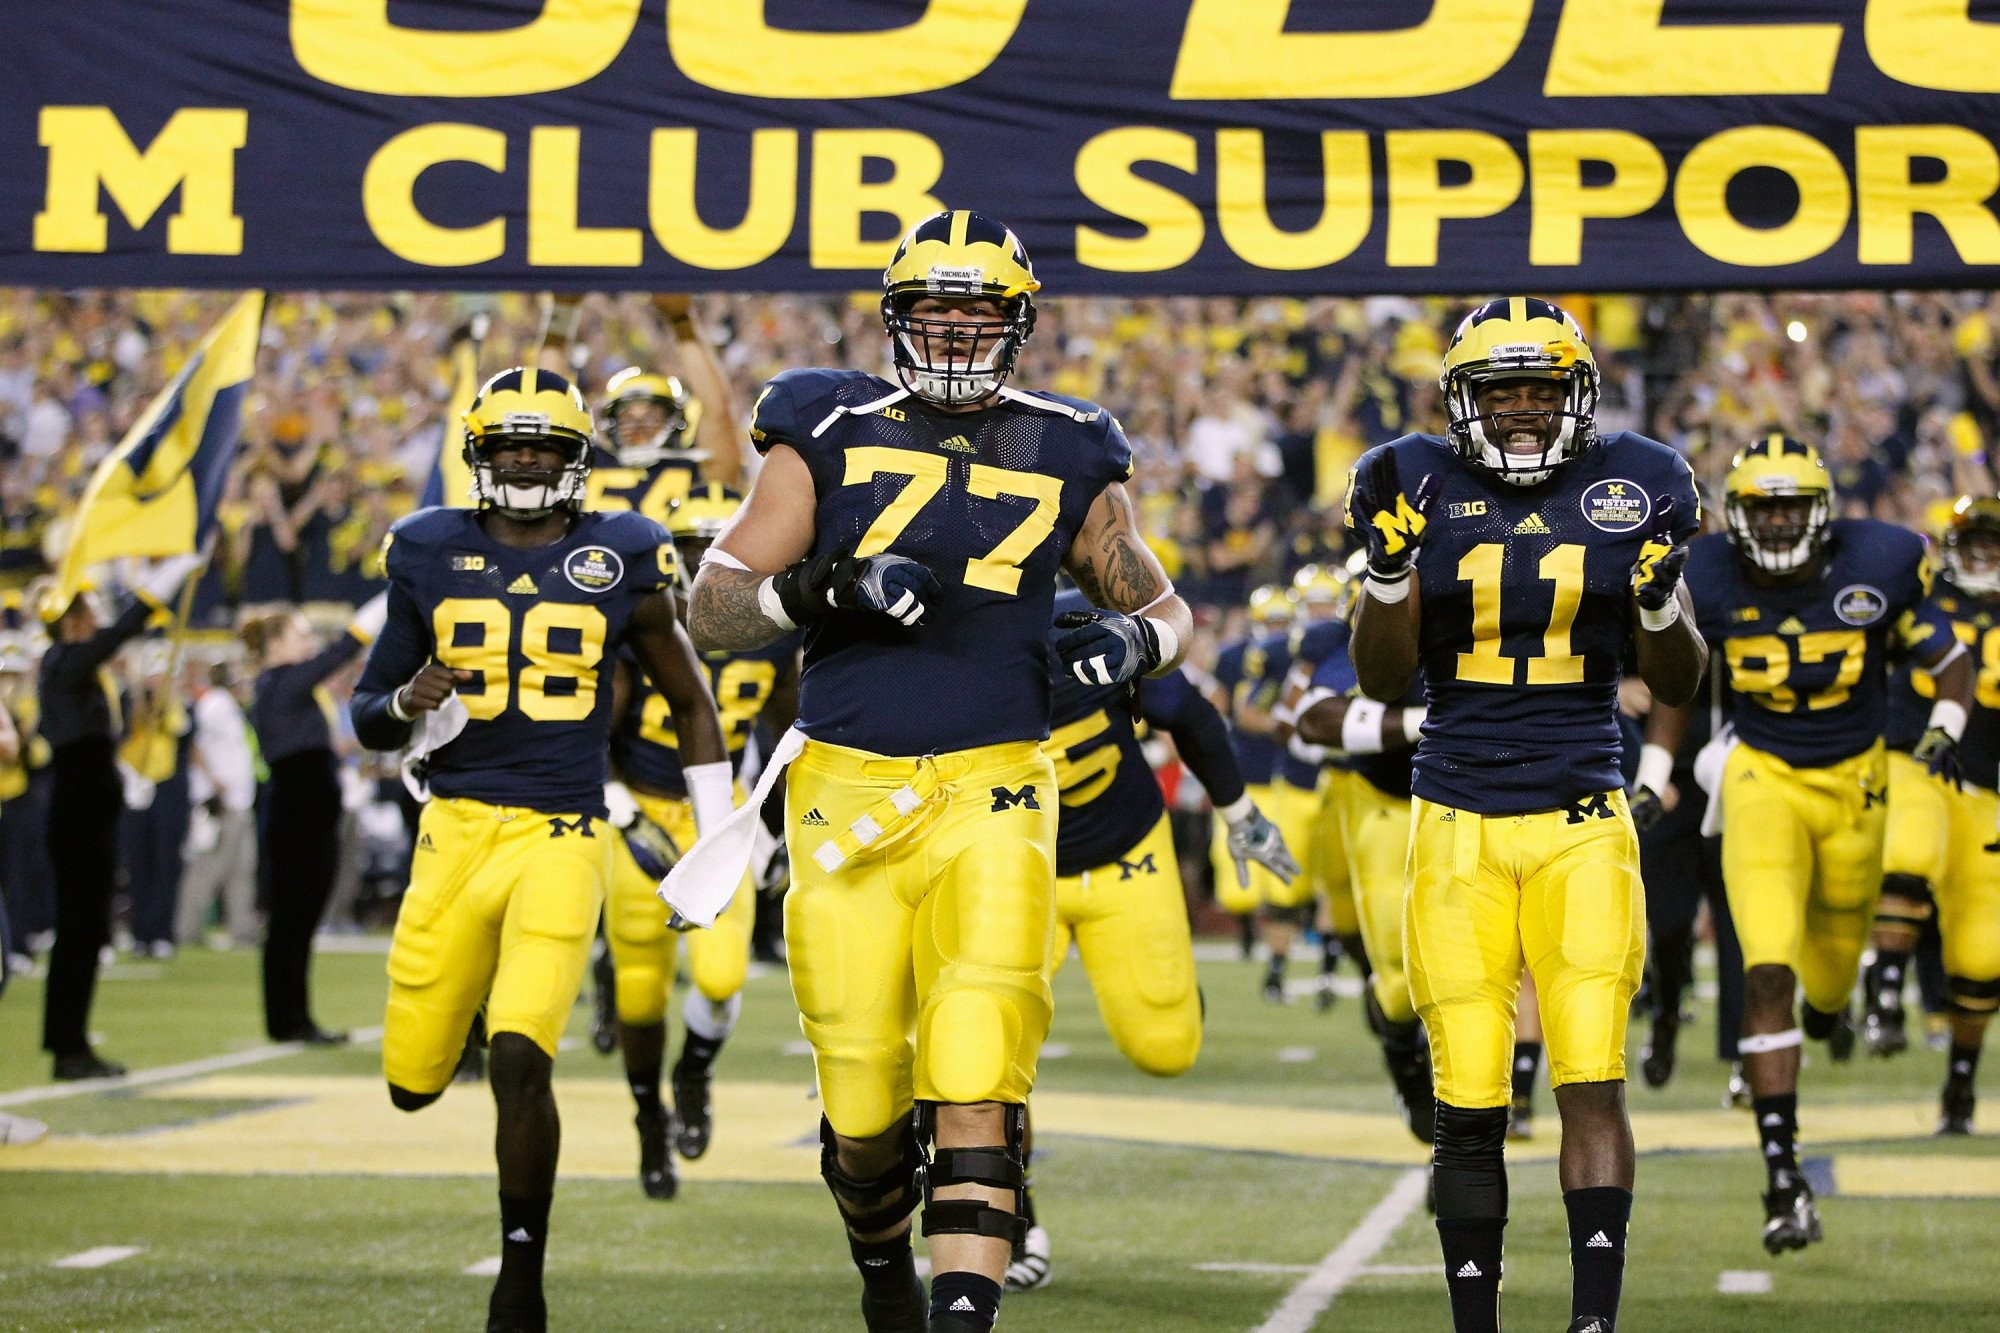 2000x1333 Michigan Wolverines Football Wallpaper Big Ten Football Online 2000×1333 Michigan  Wolverines Football Wallpapers (